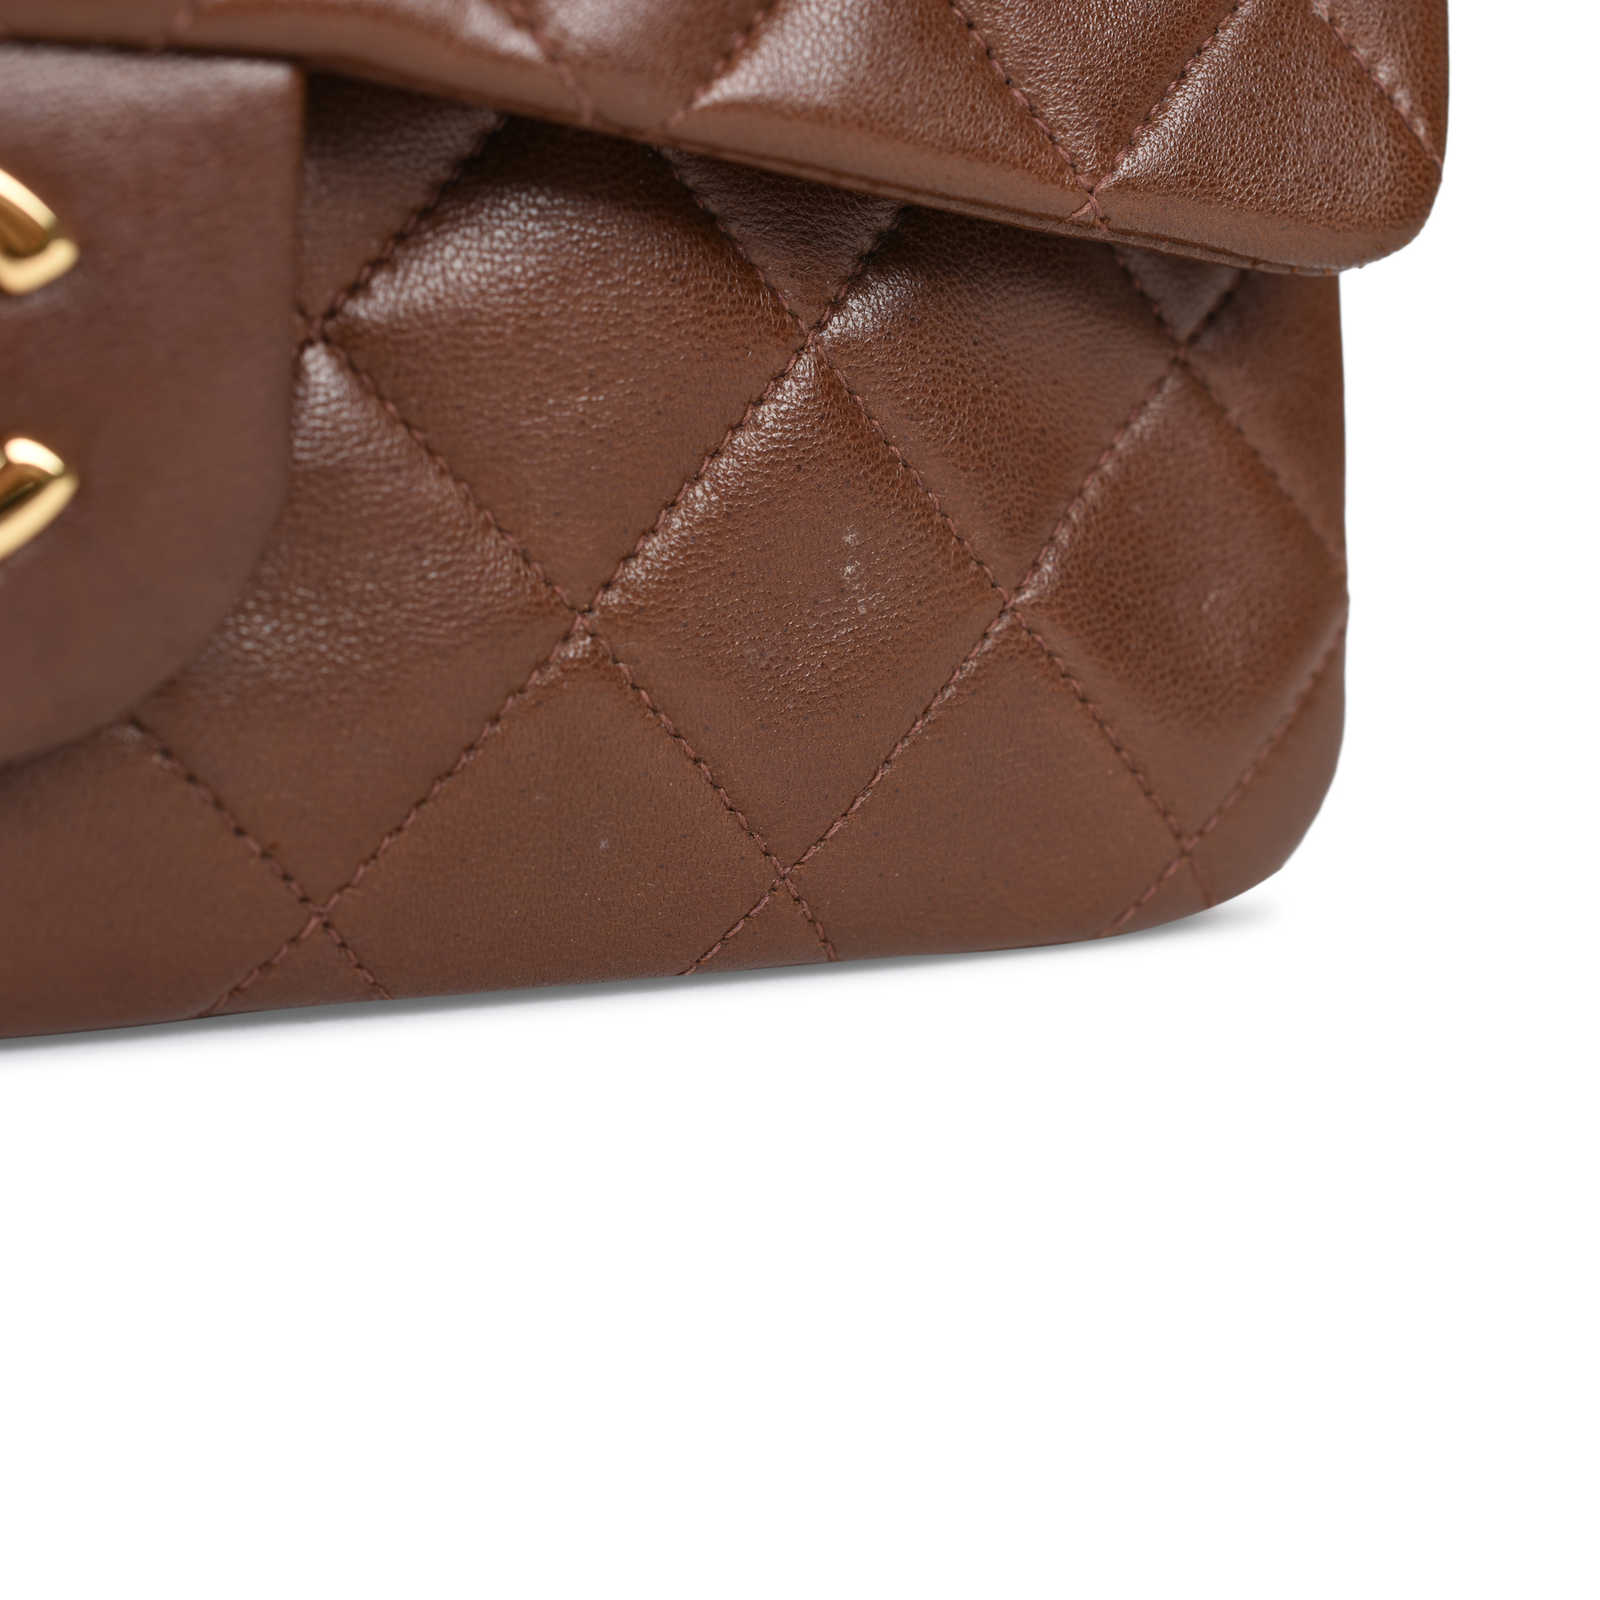 e724cc46af15 ... Authentic Second Hand Chanel Brown Small Classic Flap Bag  (PSS-051-00378) ...